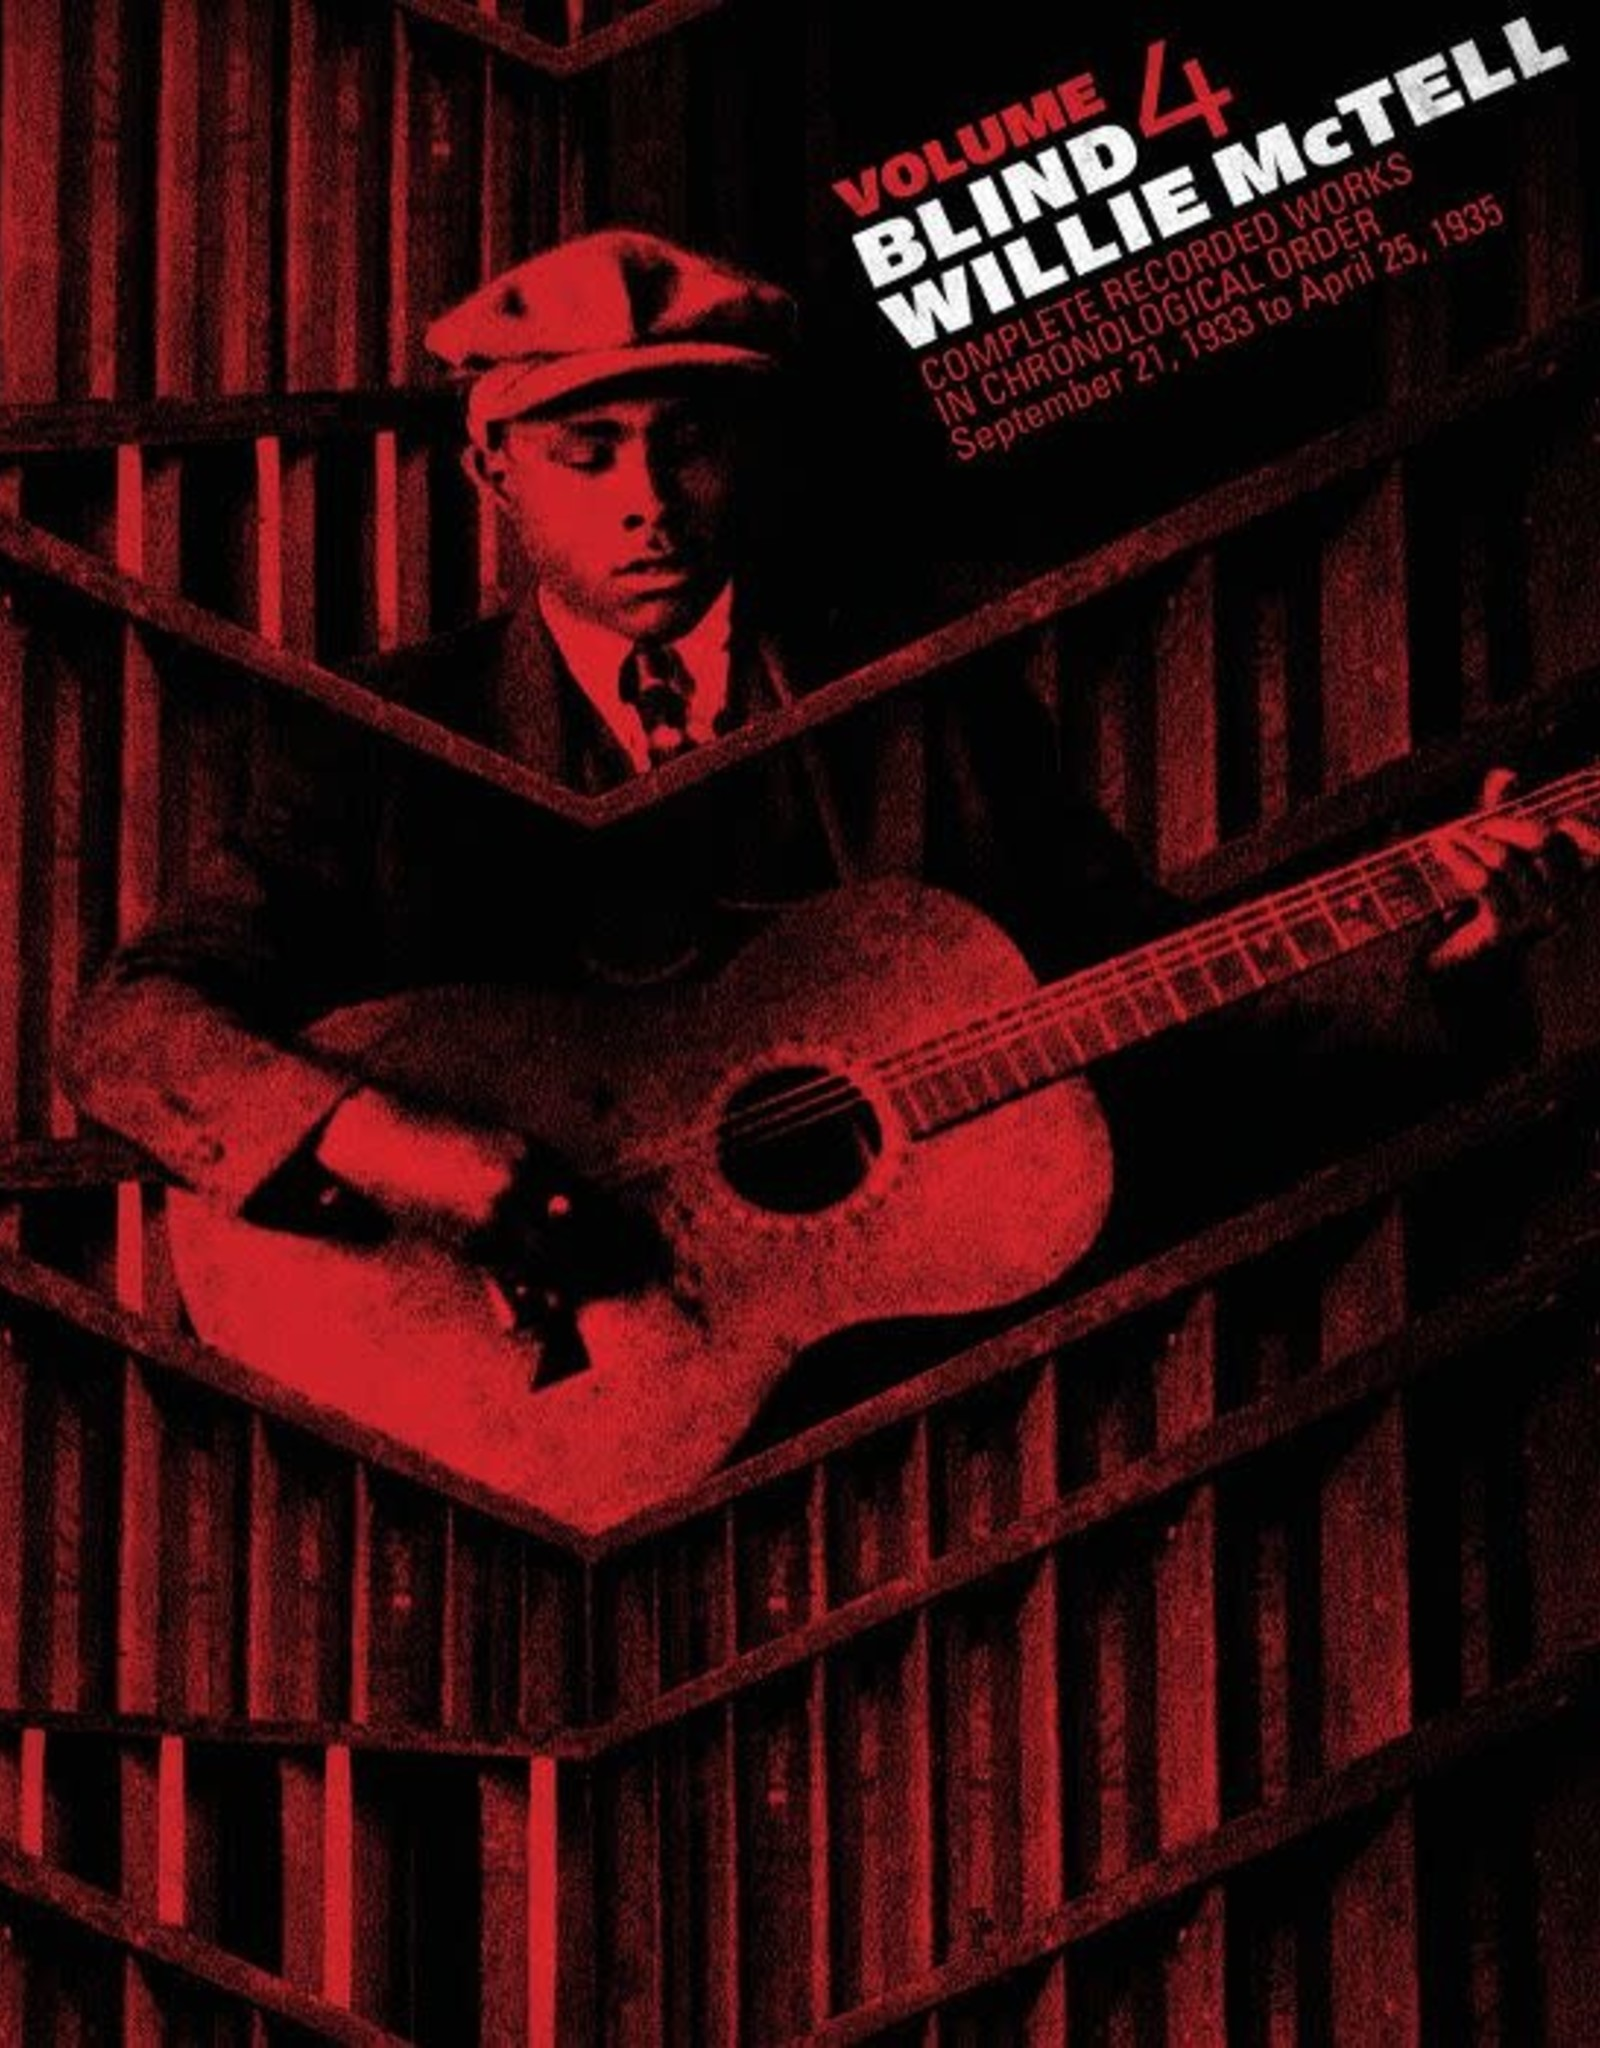 "Blind Willie Mctell - The Complete Recorded Works In Chronological Order Volume 4 (12"" Vinyl)"